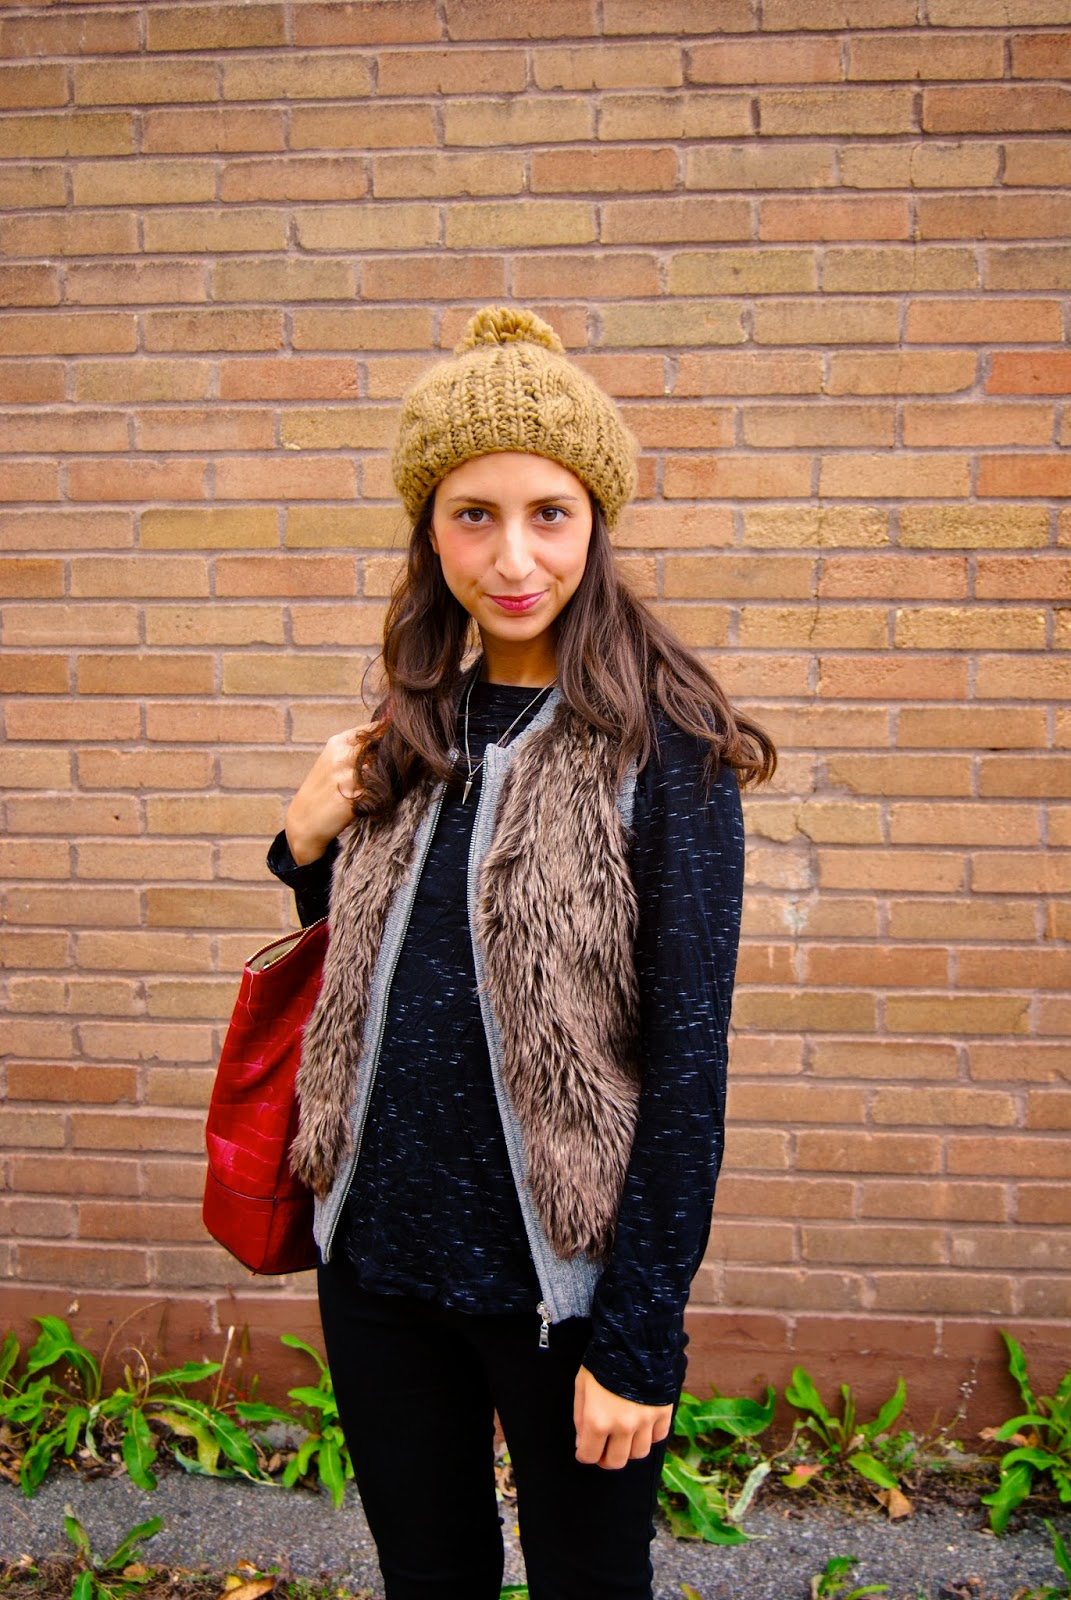 fall fashion fur vest red handbag tuque hat